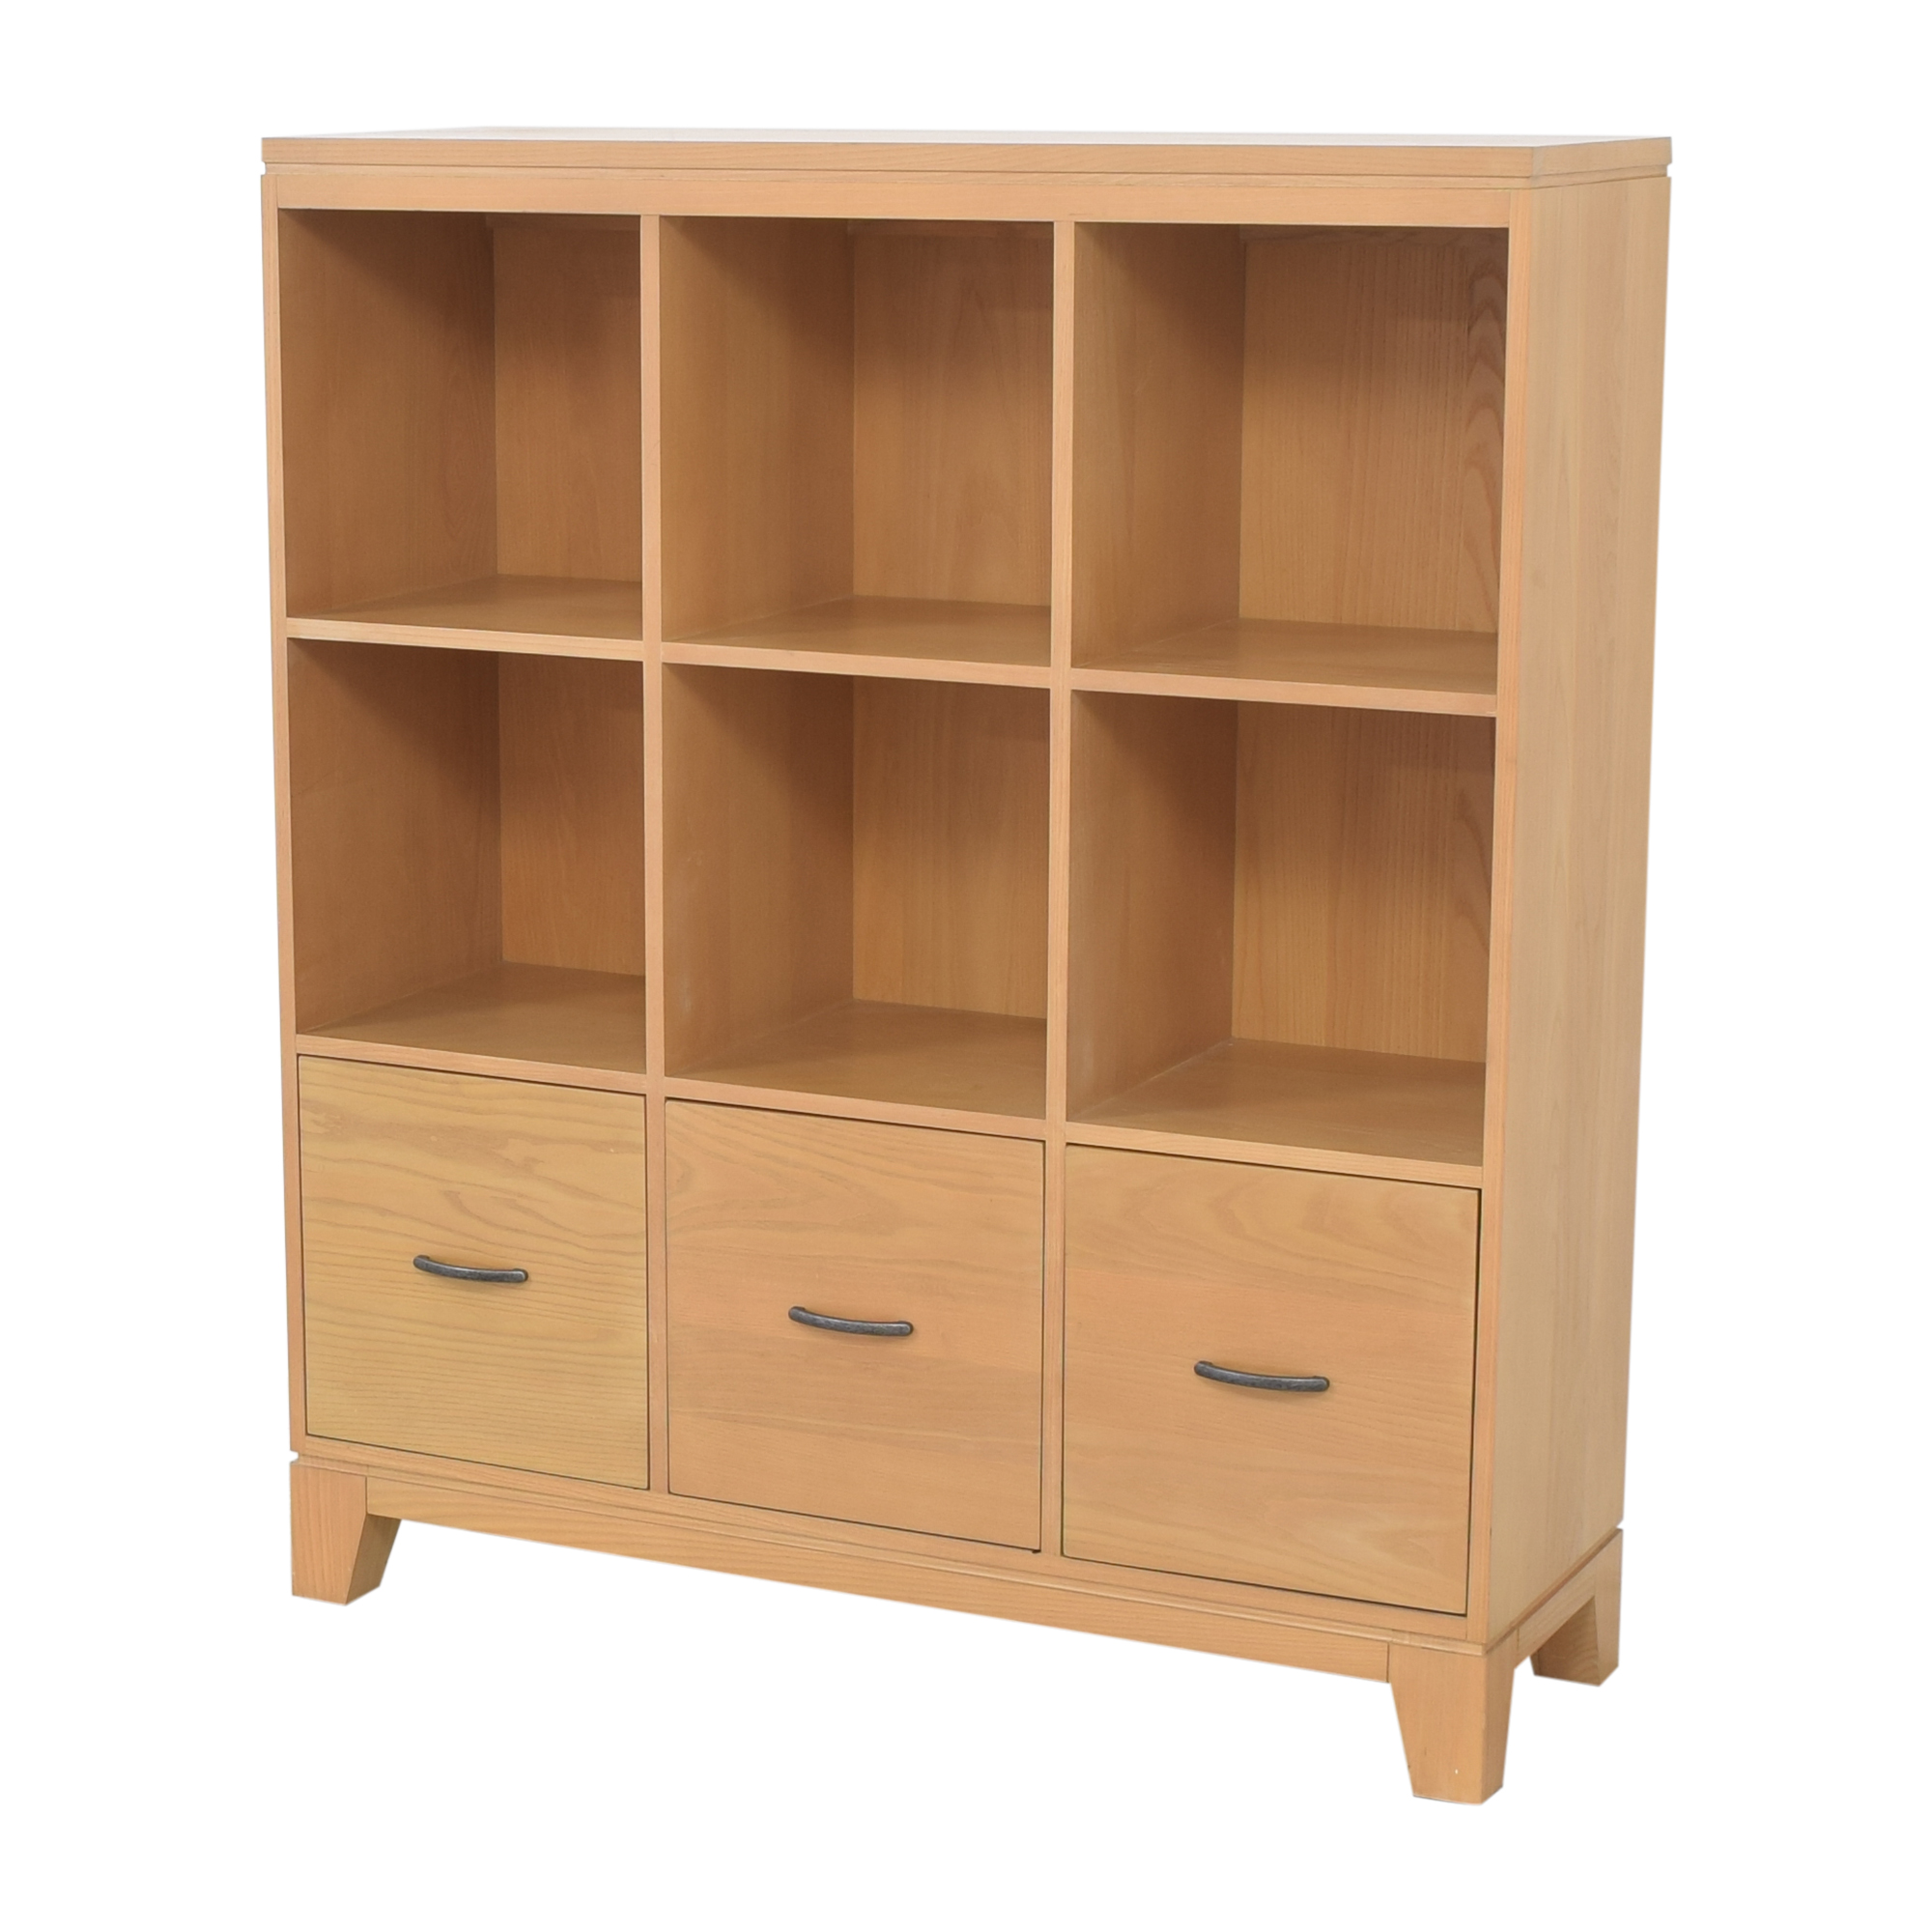 shop Ethan Allen Bookcase with Filing Cabinets Ethan Allen Storage